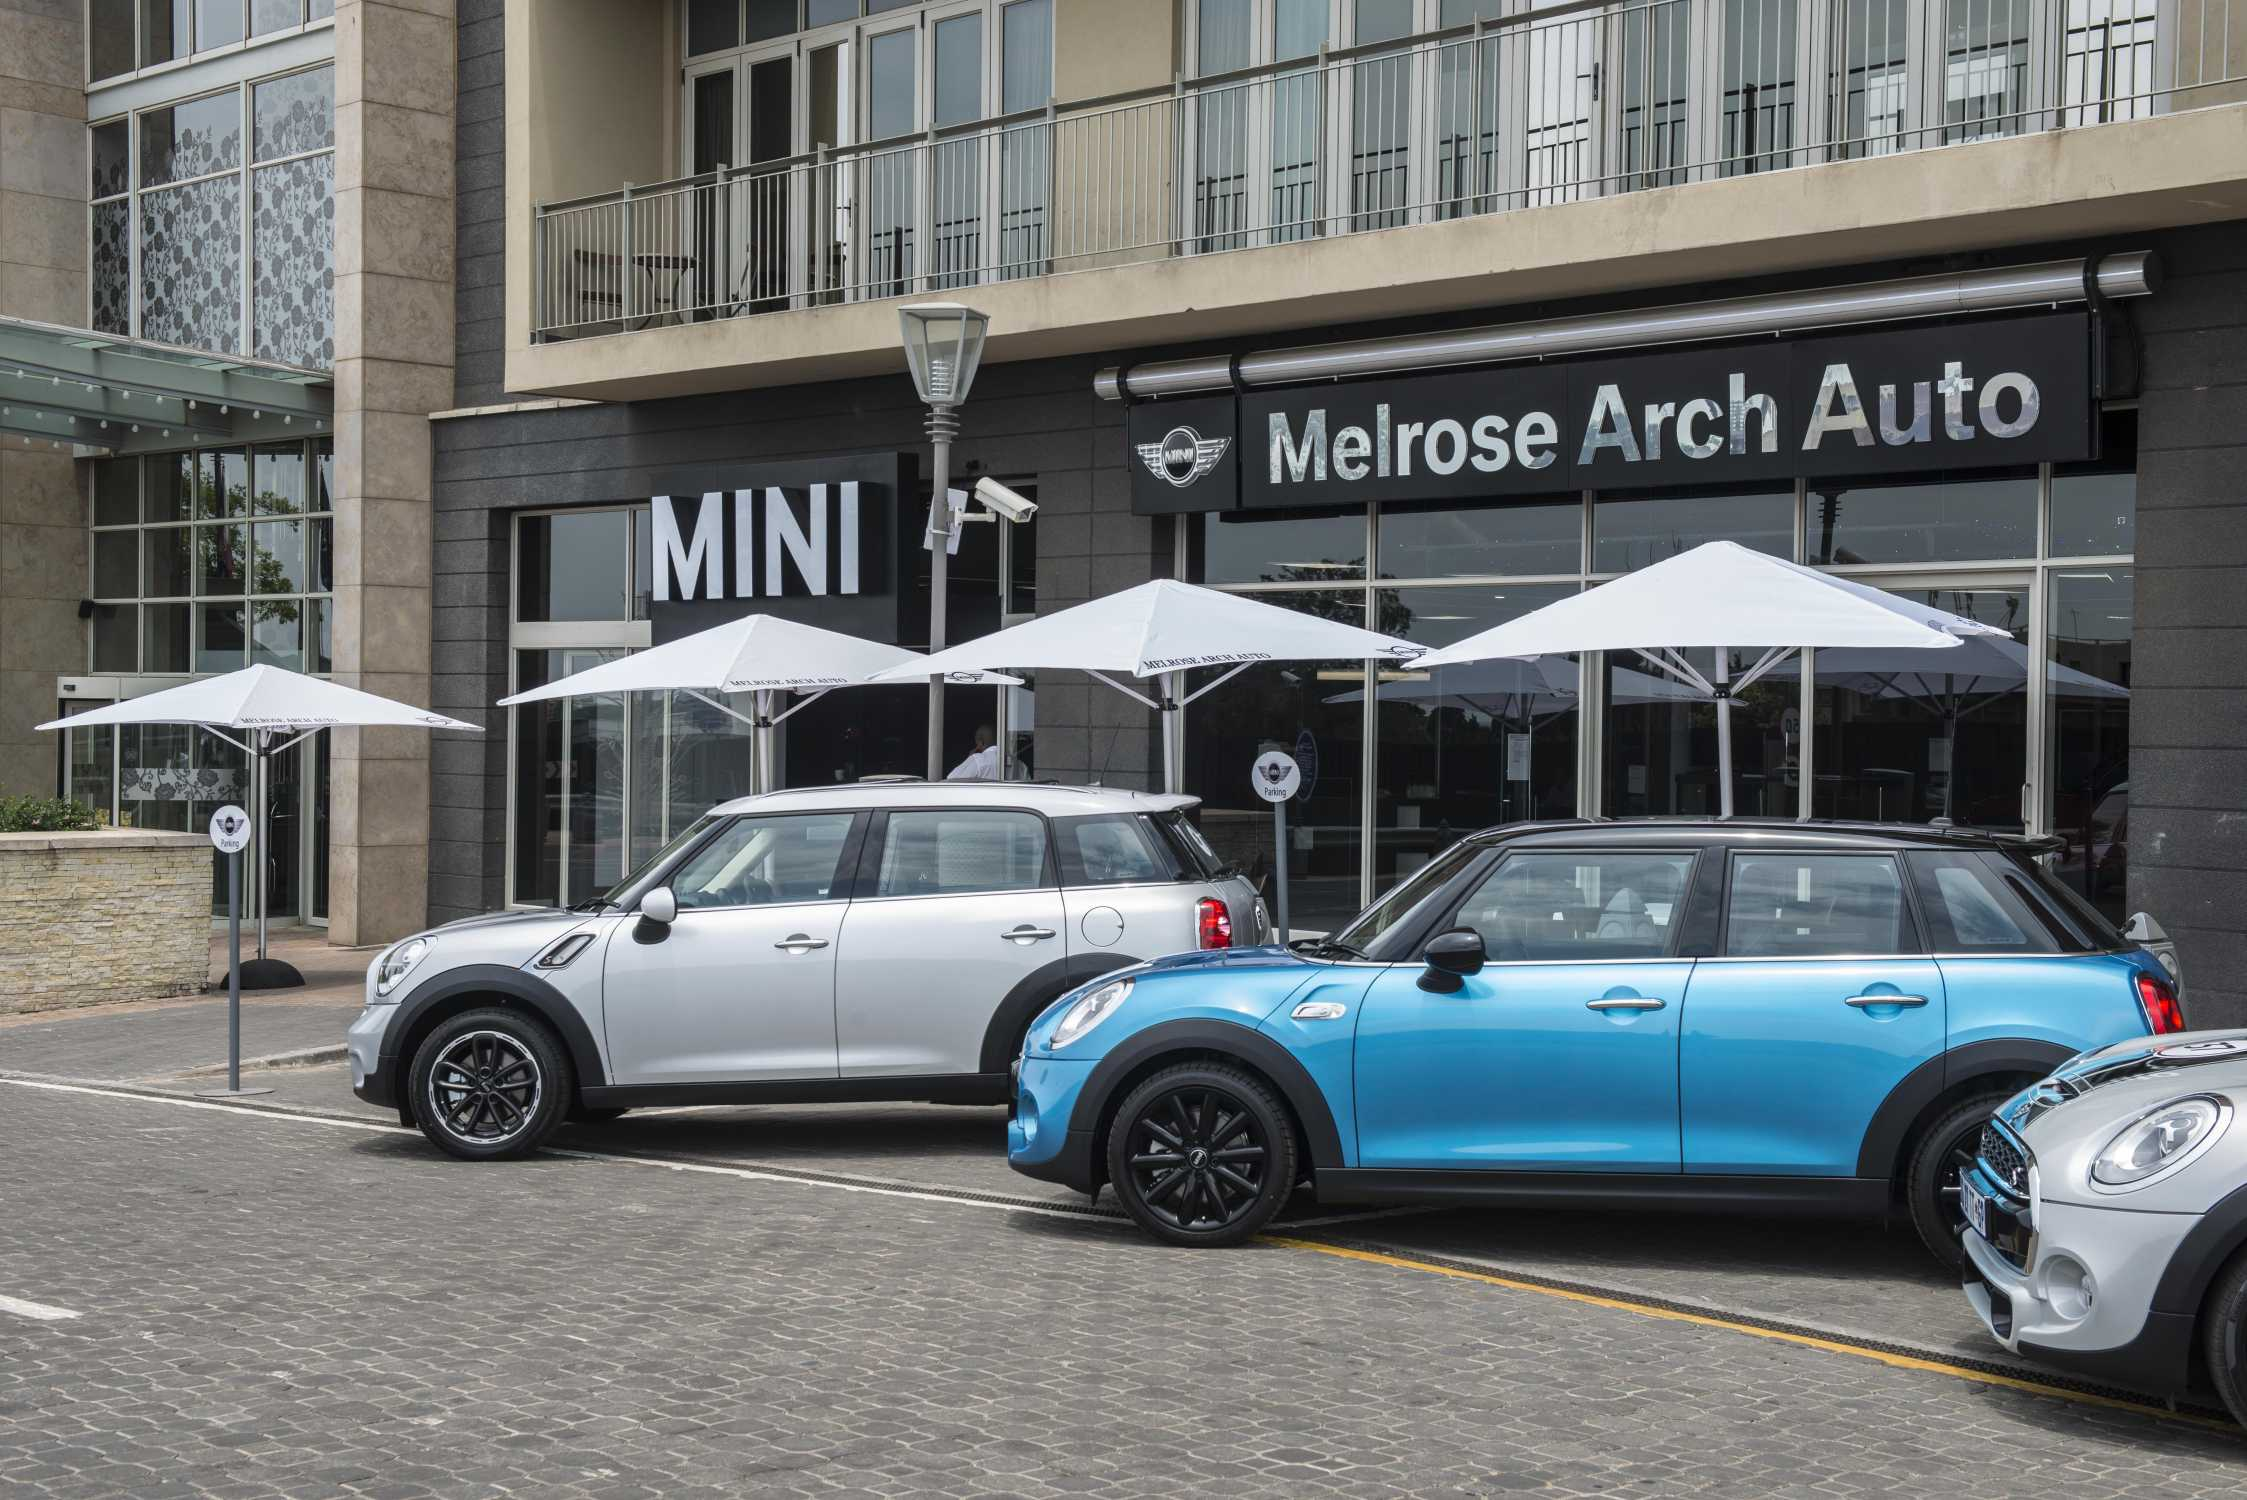 Melrose arch auto the new mini outlet in melrose arch for South motors bmw mini